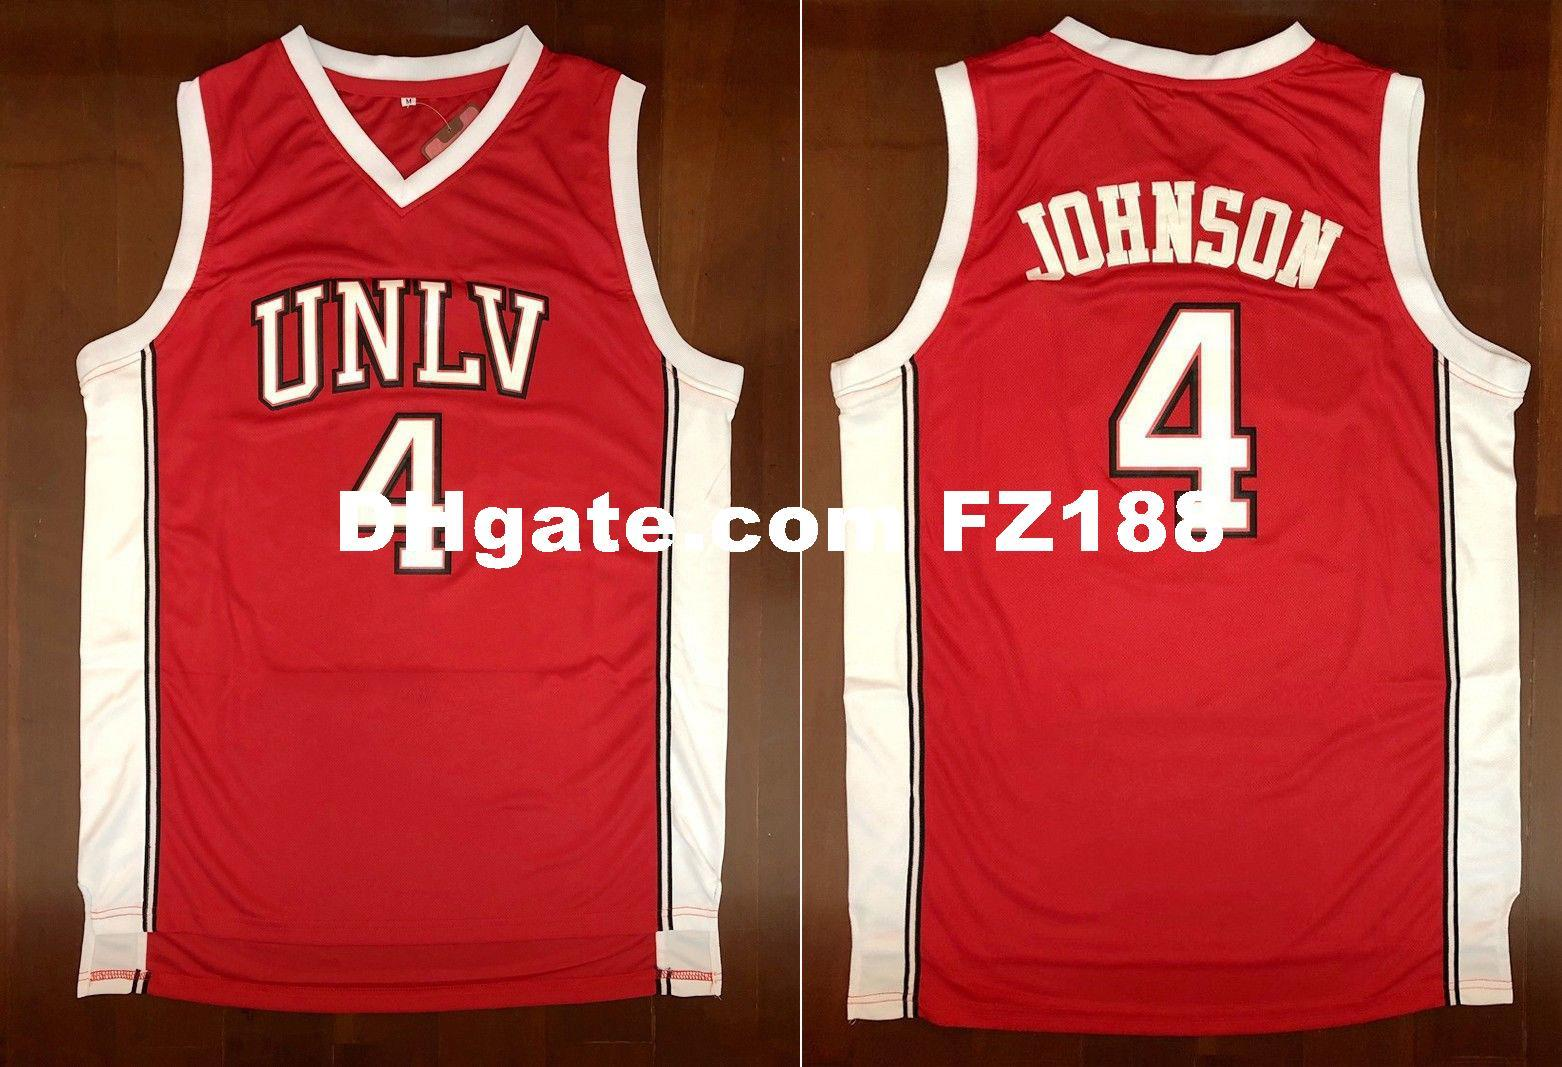 info for 44728 f6fba Larry Johnson #4 UNLV Rebels STITCH Men s Basketball Stitched Jersey XS-6XL  Red